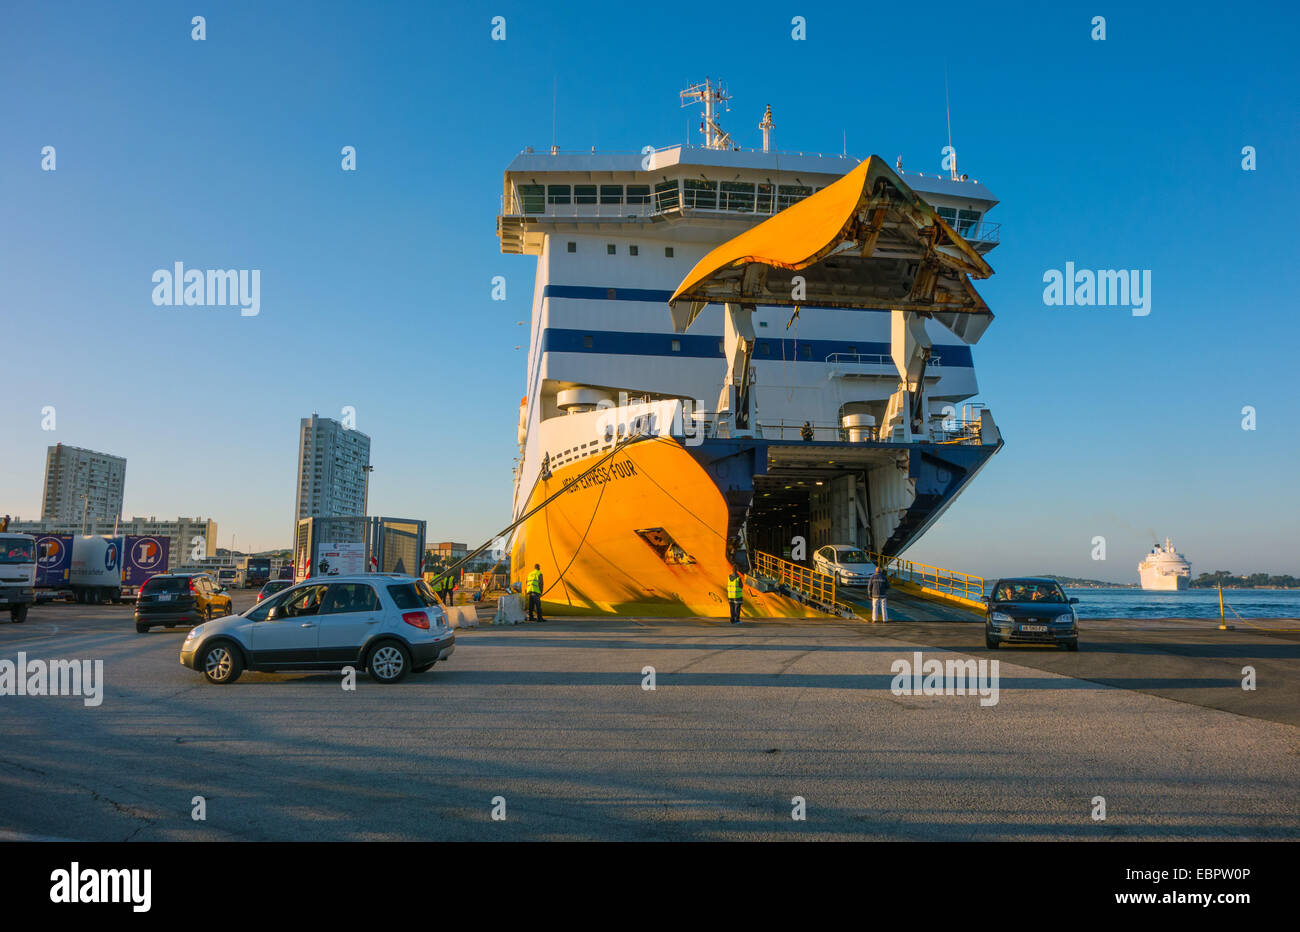 Yellow Roll-on Roll-off Ro Ro Ferry with bow lifted - Stock Image